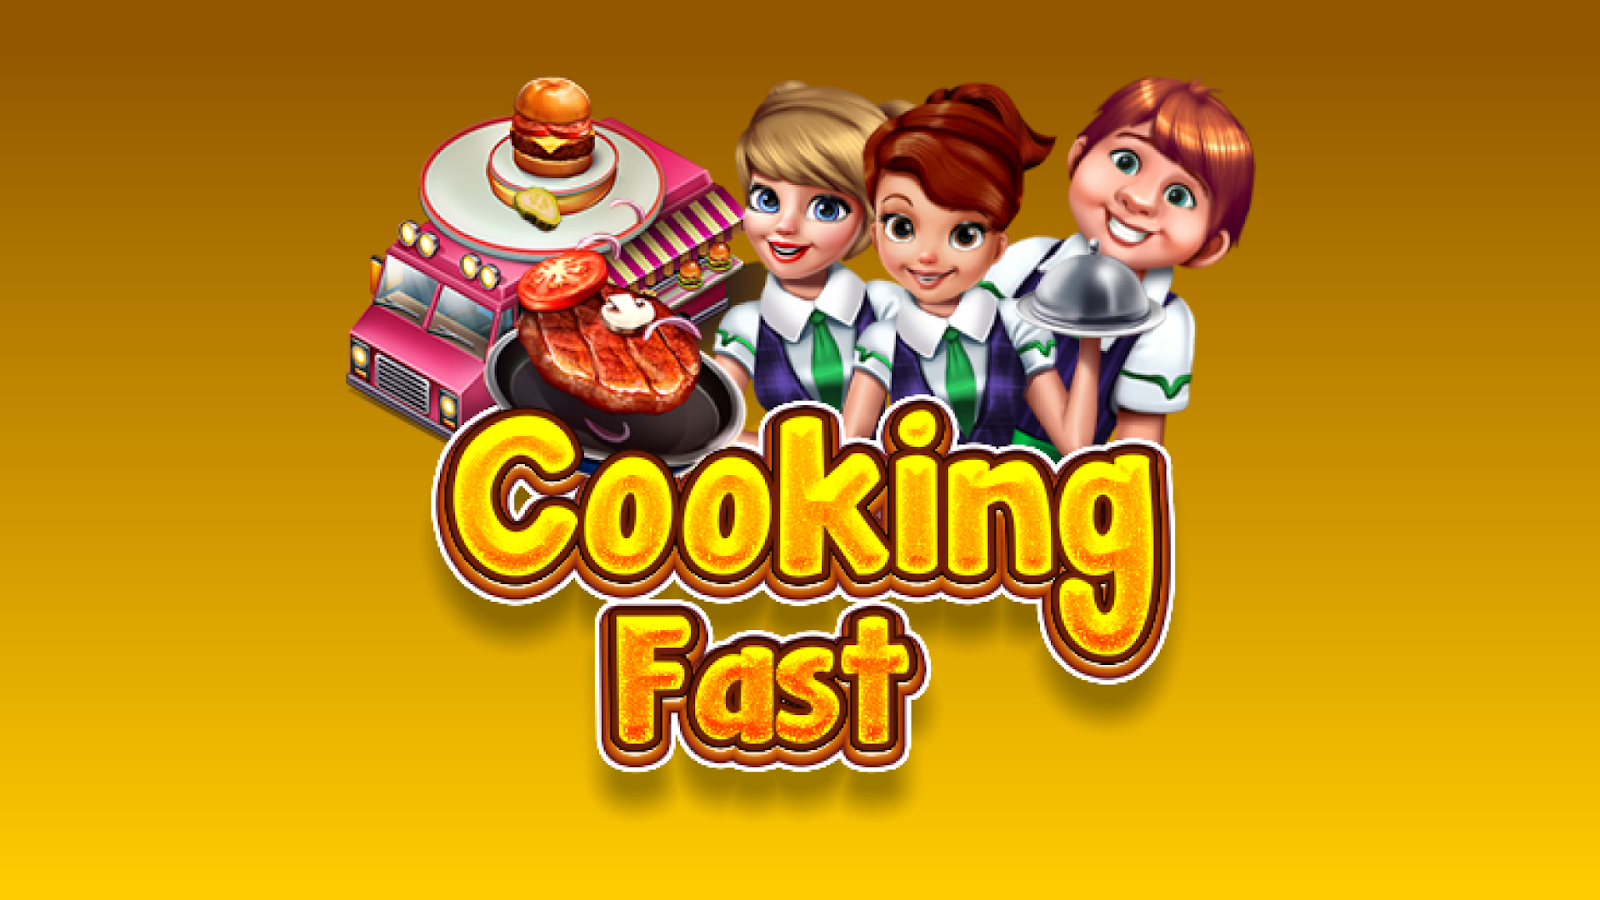 Cooking Craze Fast